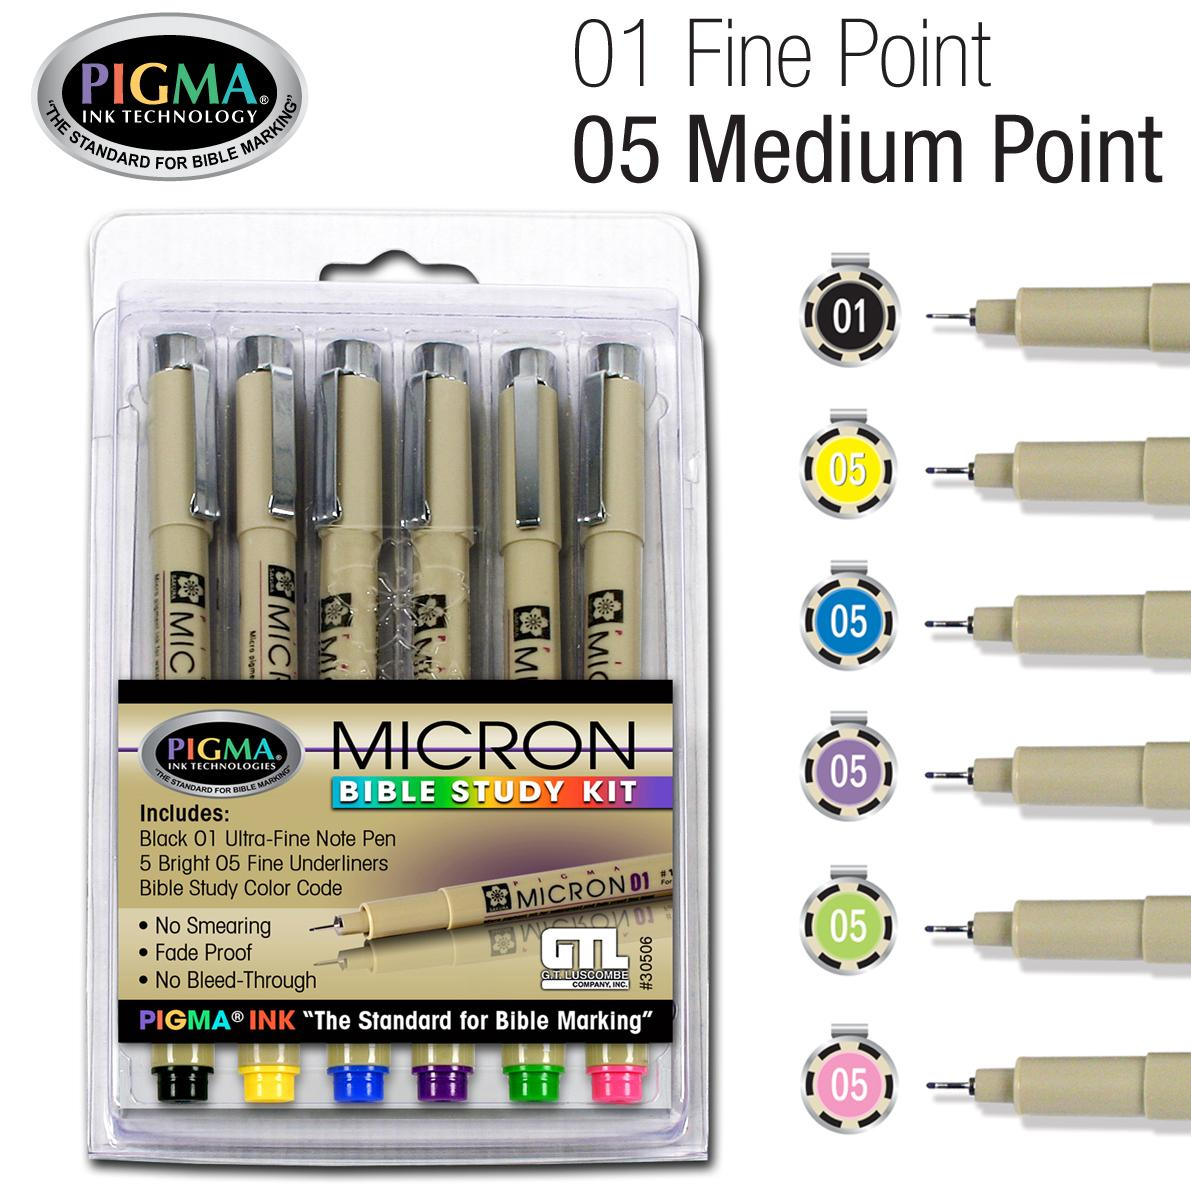 Pigma Micron Bible Study Kit 6pk (Other)